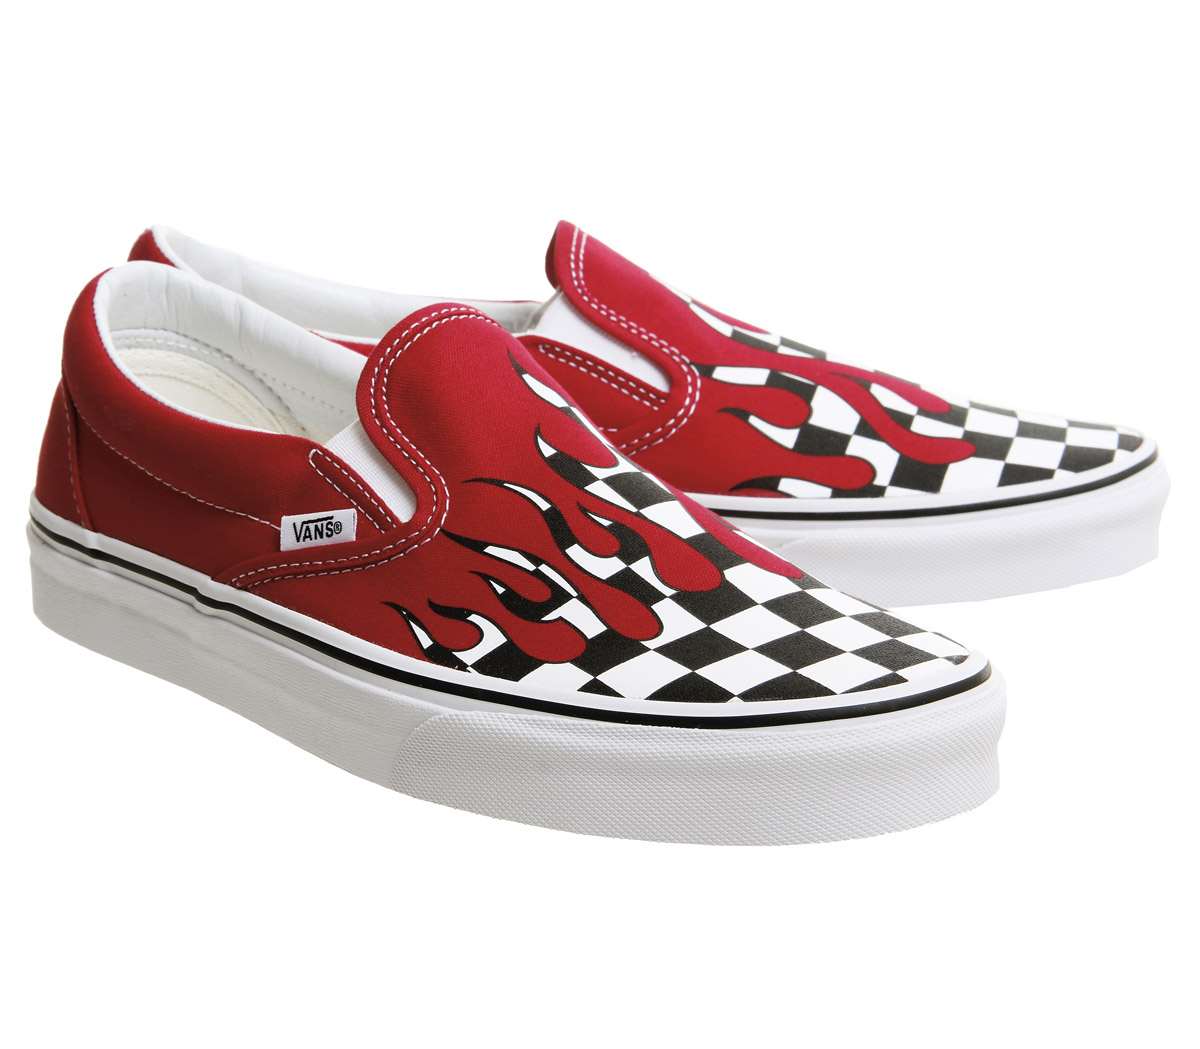 Sentinel Mens Vans Vans Classic Slip On Trainers Racing Red Checkerboard  Flame Trainers S 6805eee4a